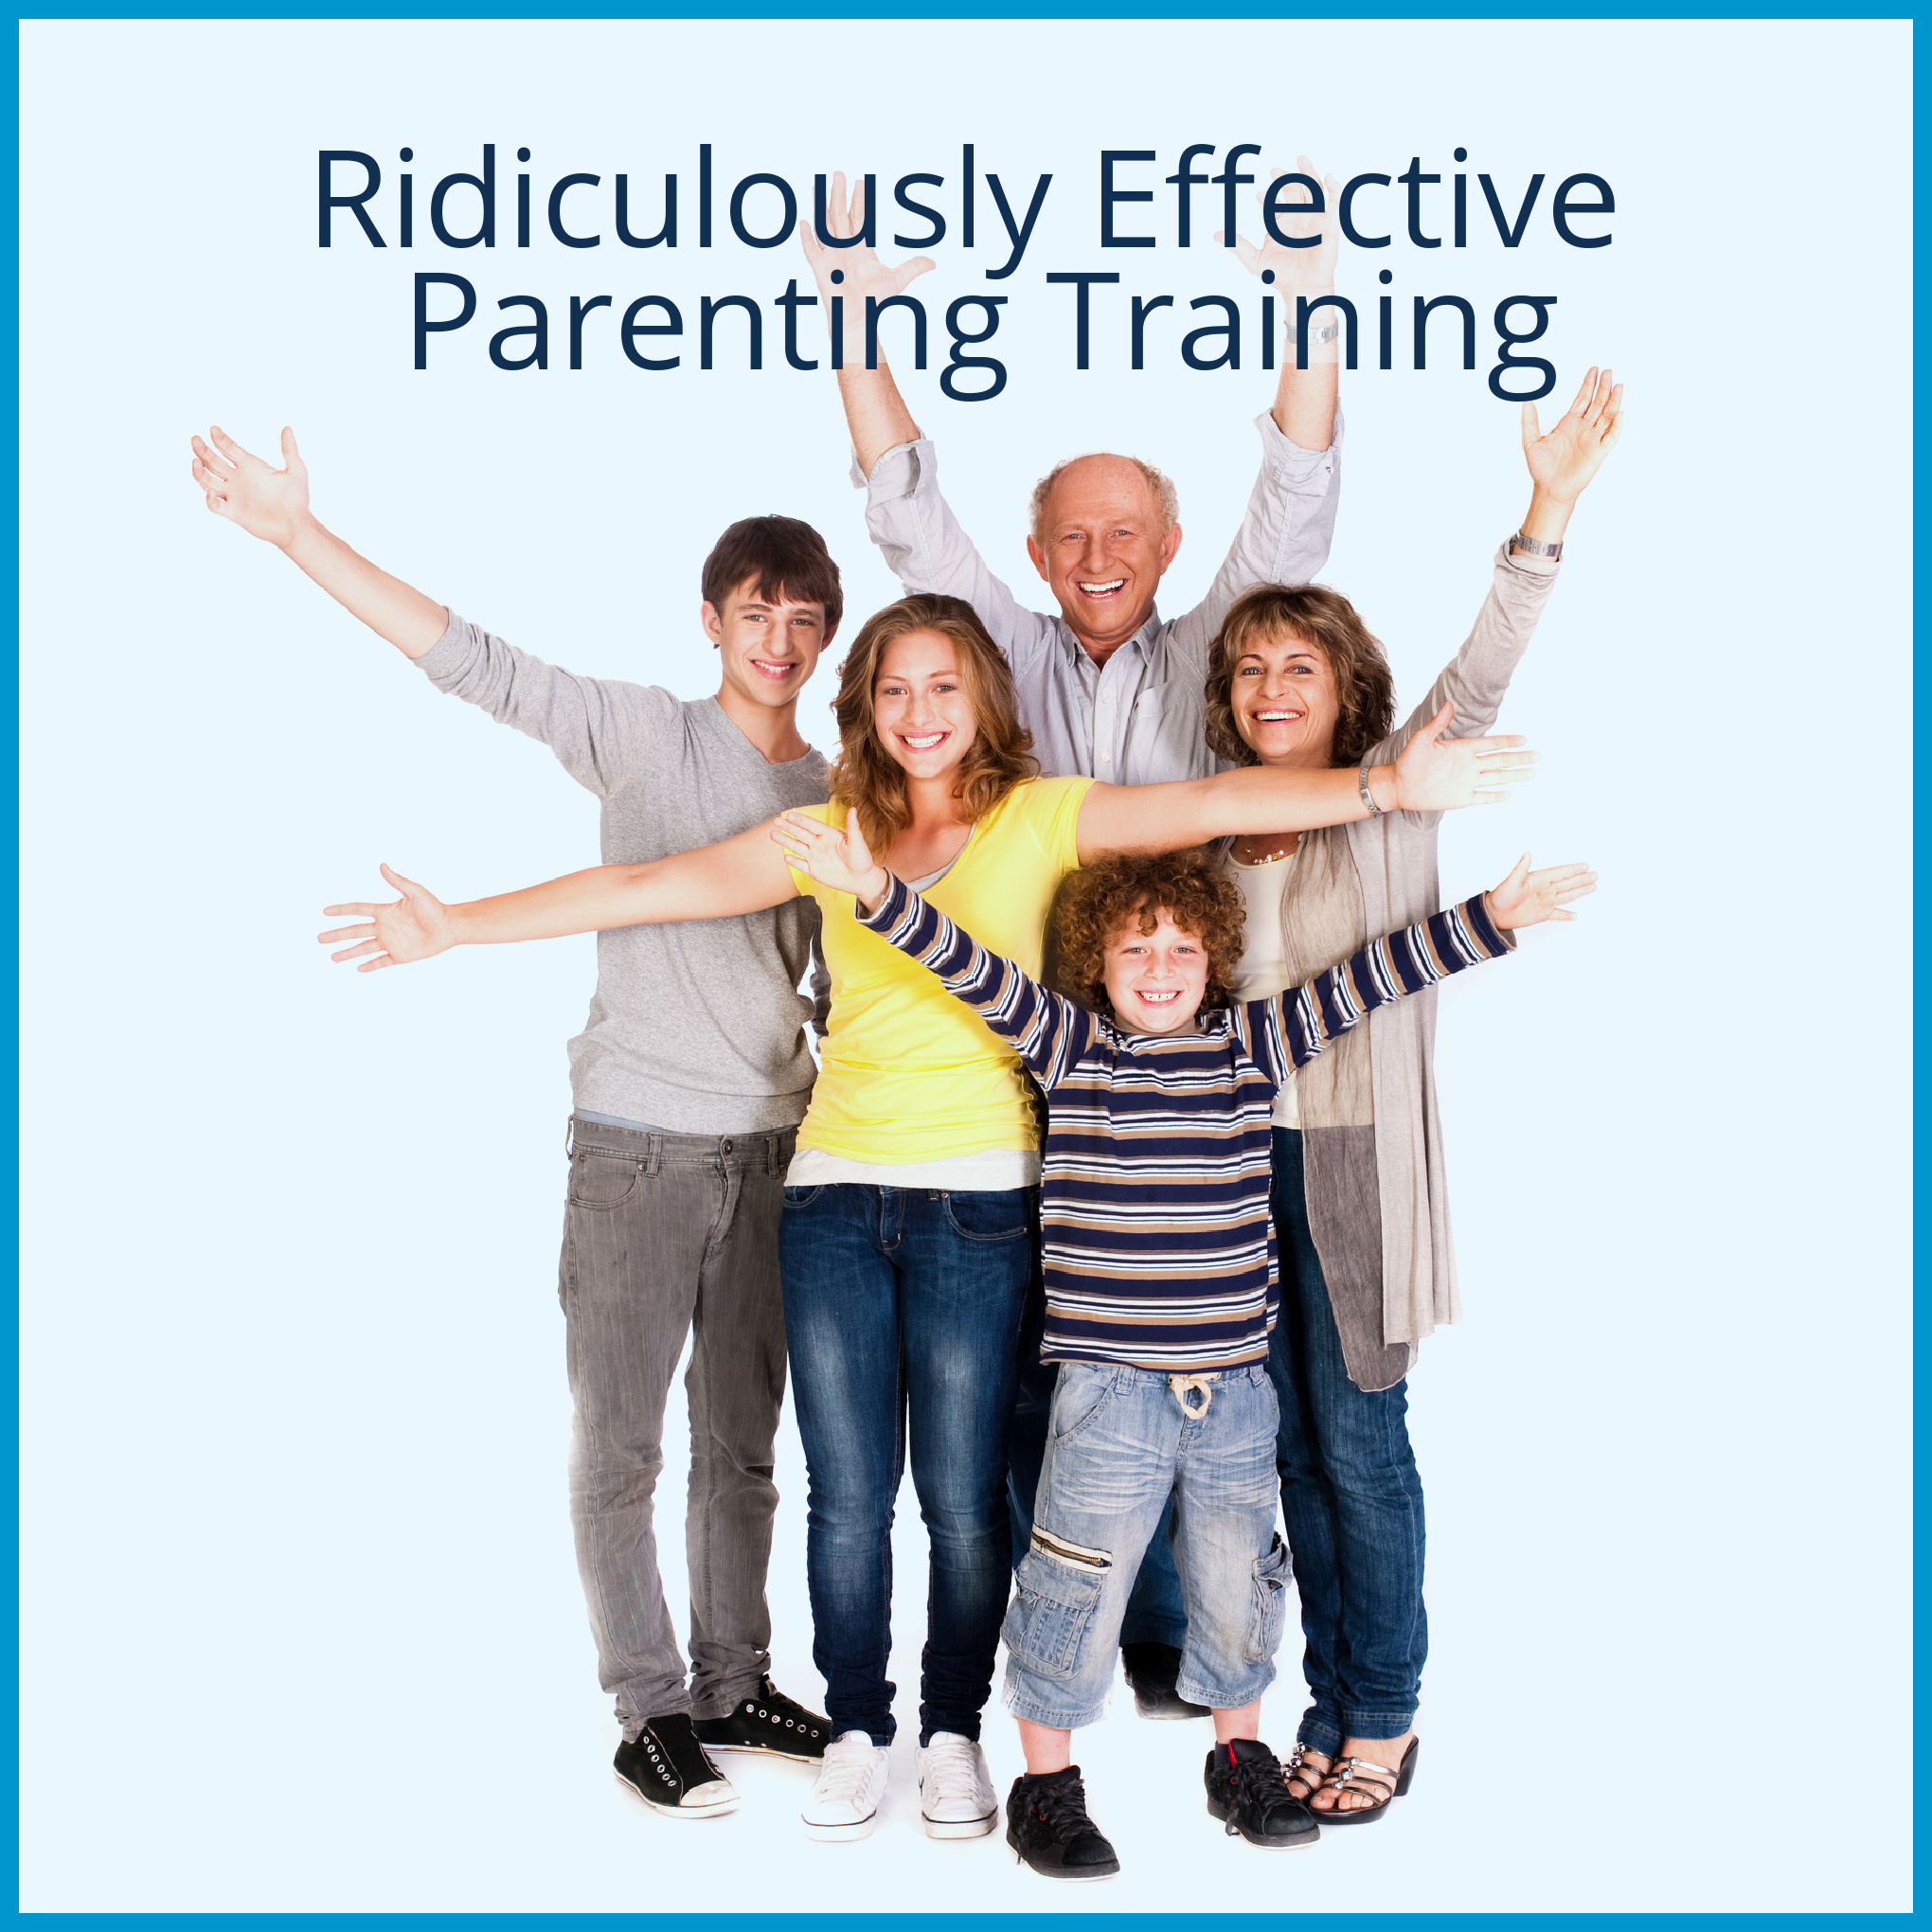 Ridiculously Effective Parenting Training image.